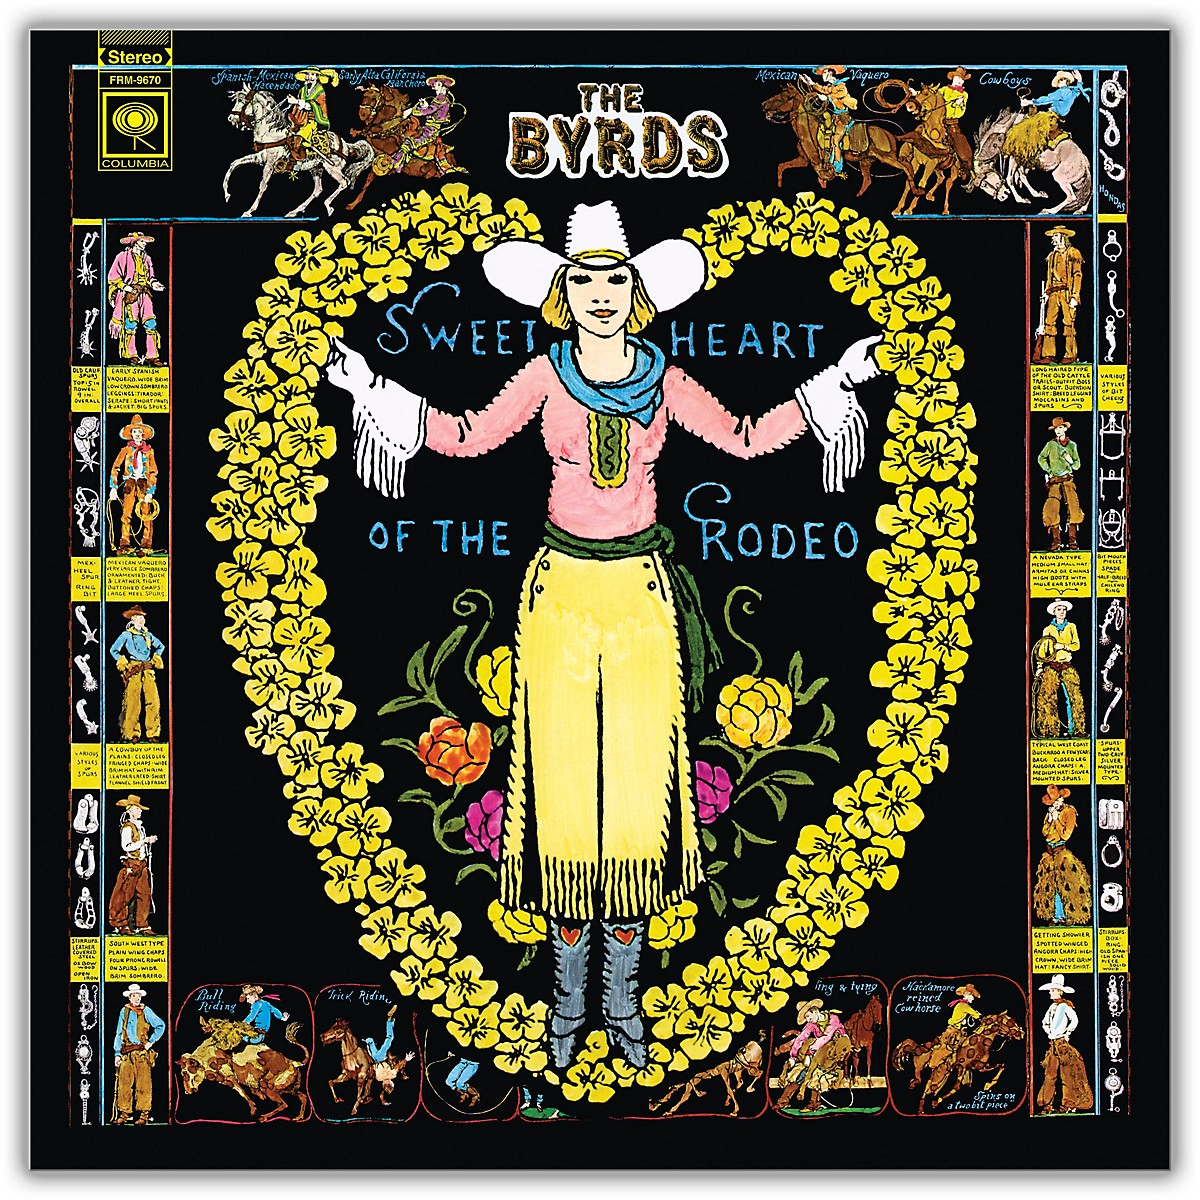 RED The Byrds - Sweetheart of the Rodeo